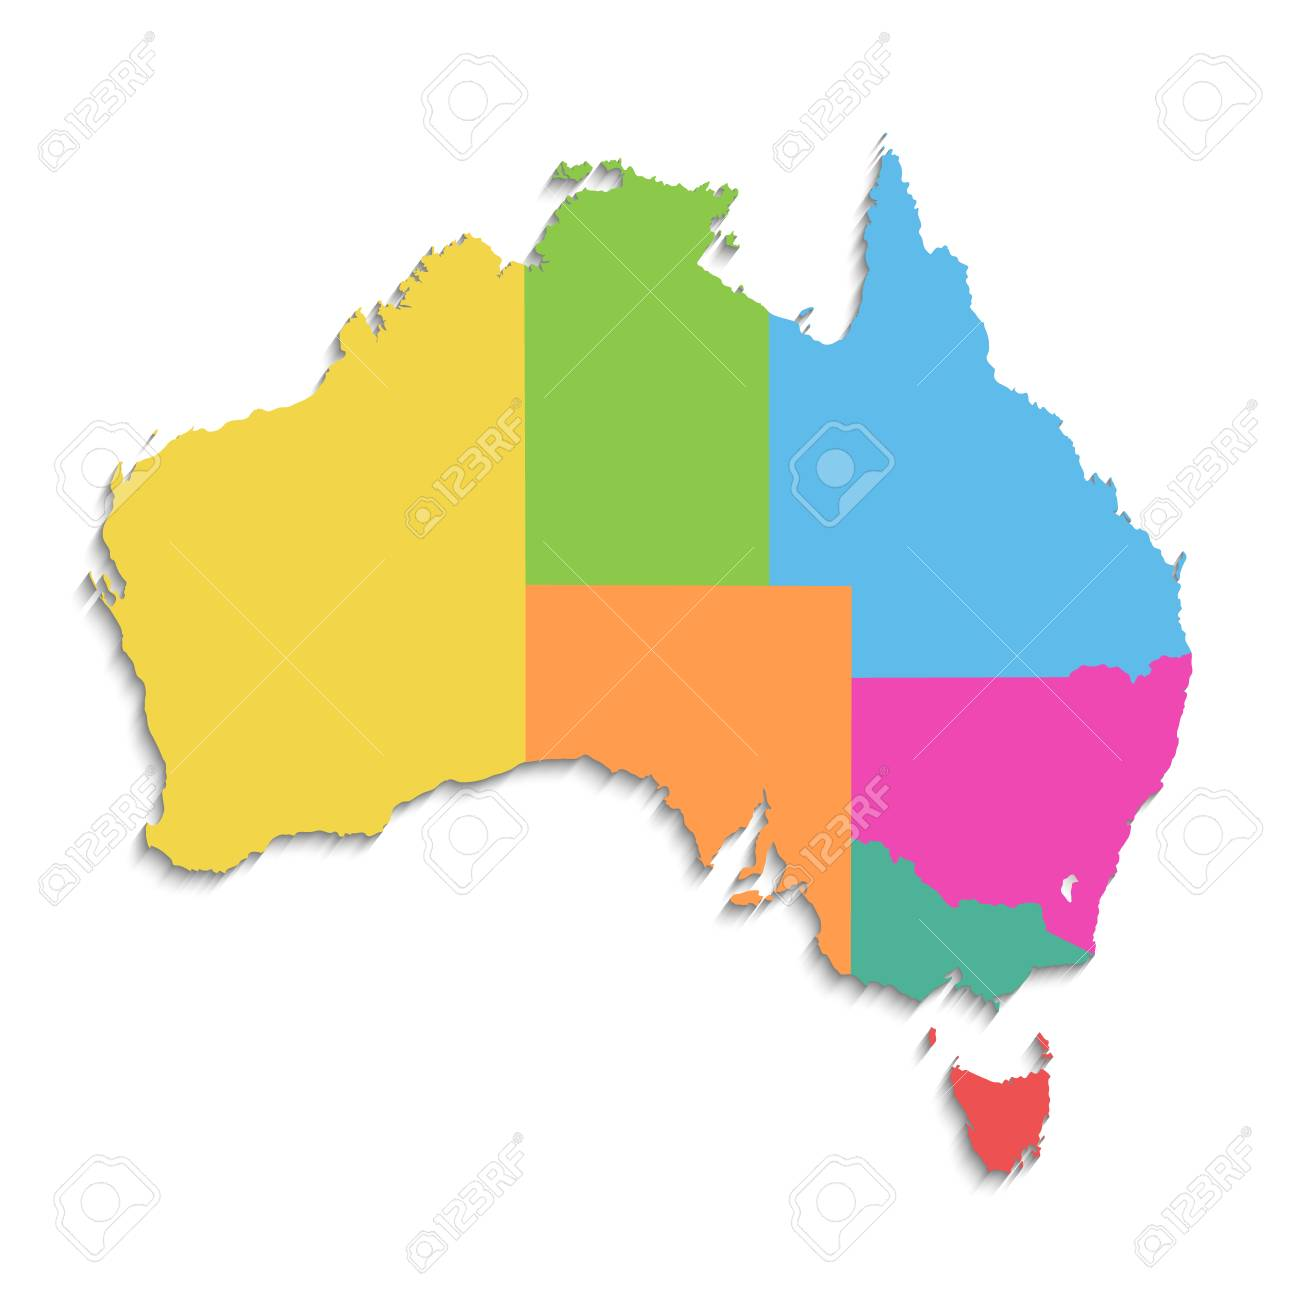 Australia Map And States.Australia Map New Political Detailed Map Separate Individual